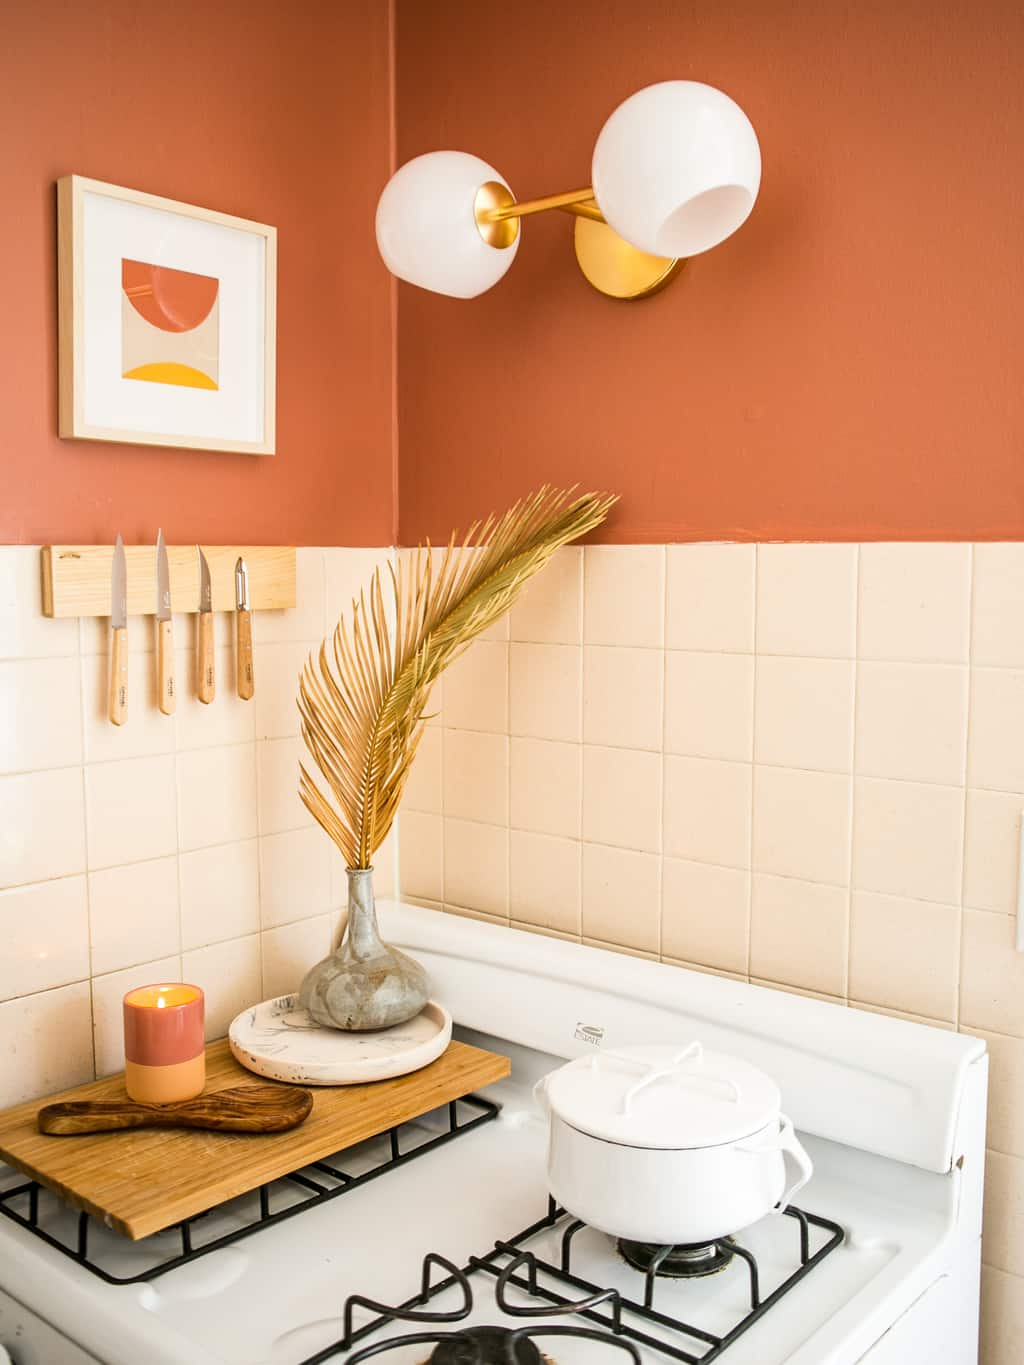 New light fixture with coral walls and a knife magnet.